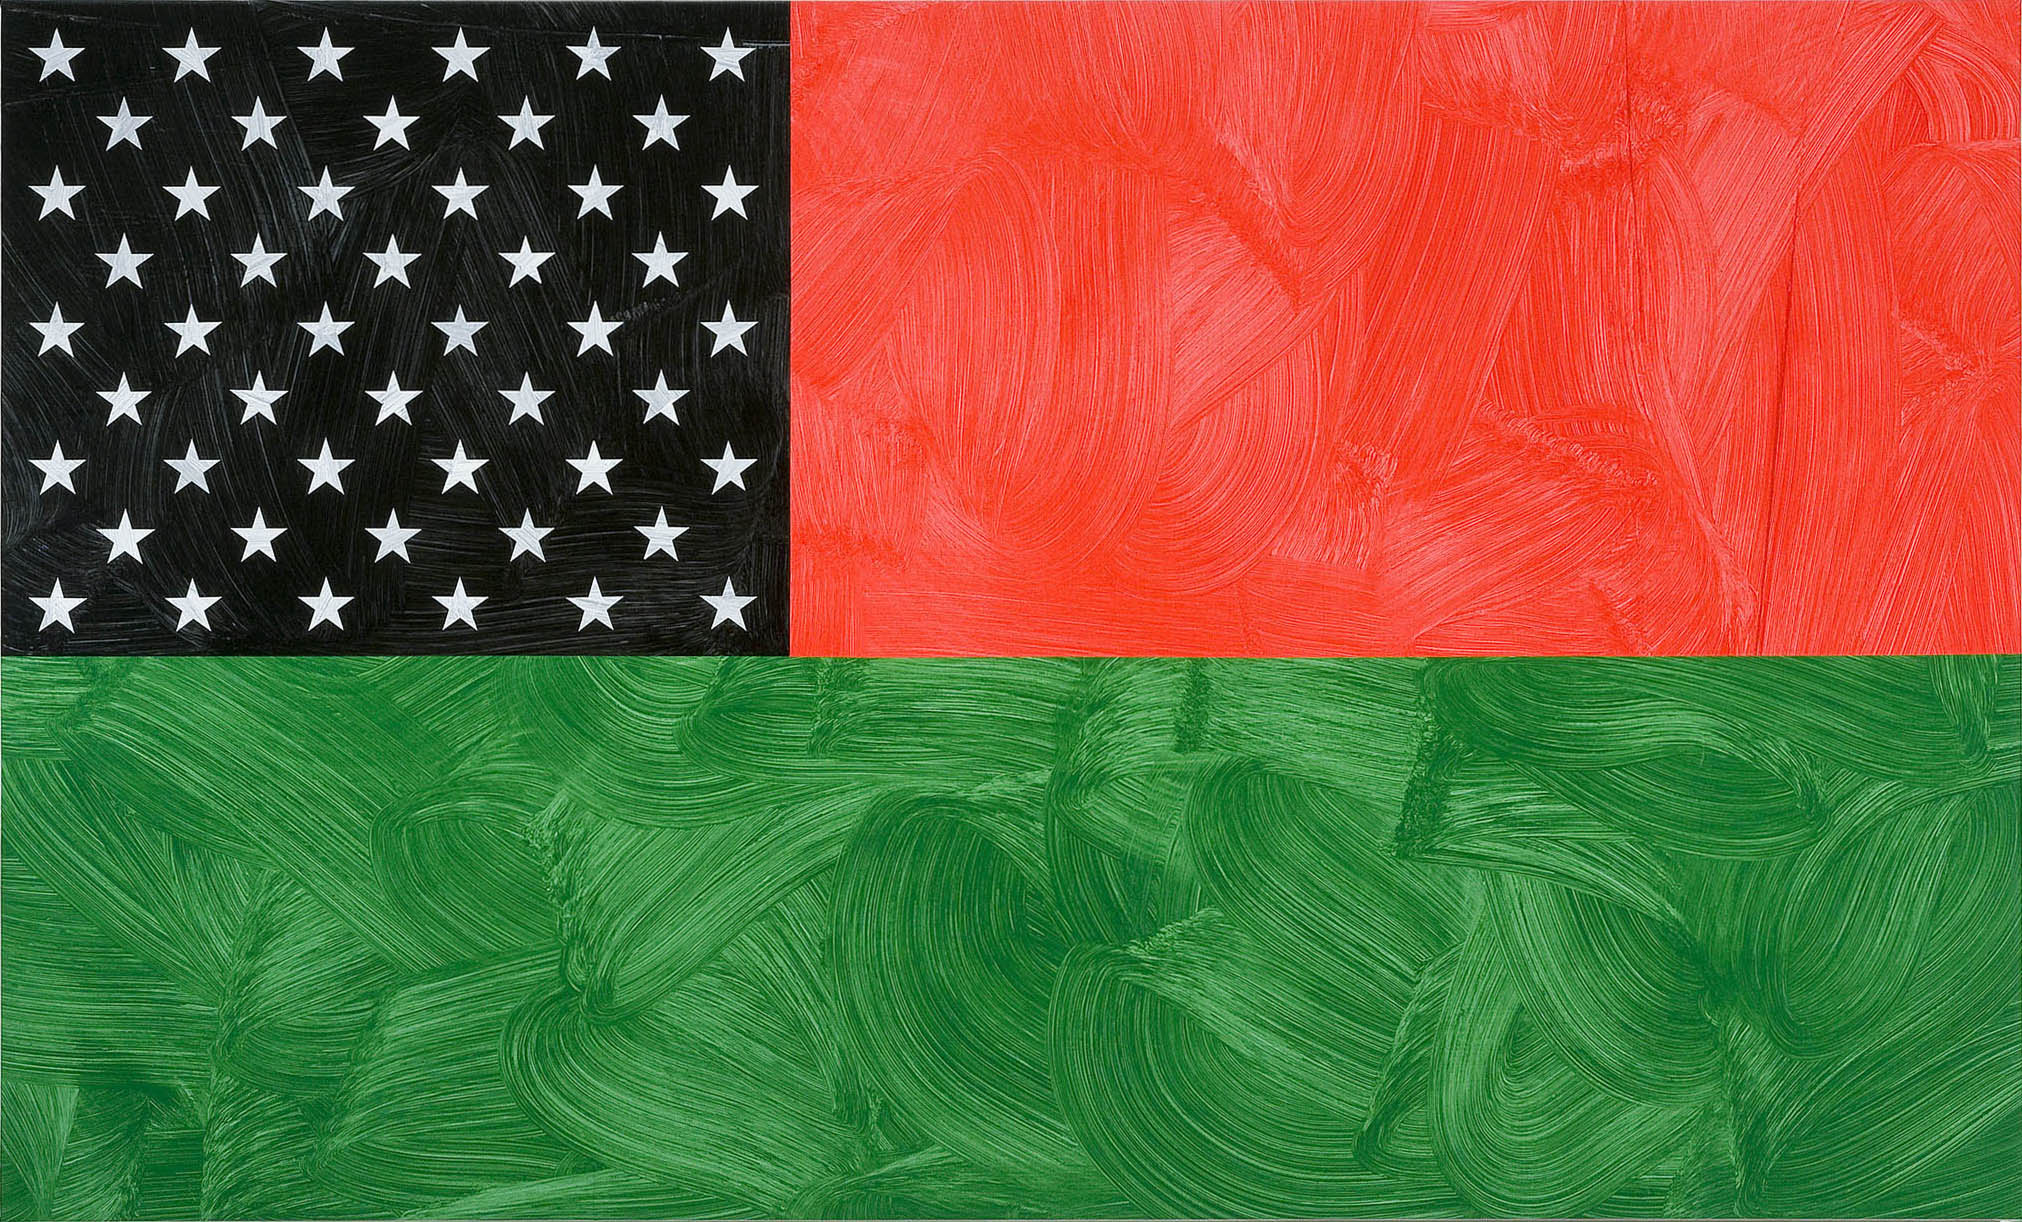 Louis Cameron | The African American National Heritage Flag (after James Wesley Chester, The Institute for African American National Heritage), 2009